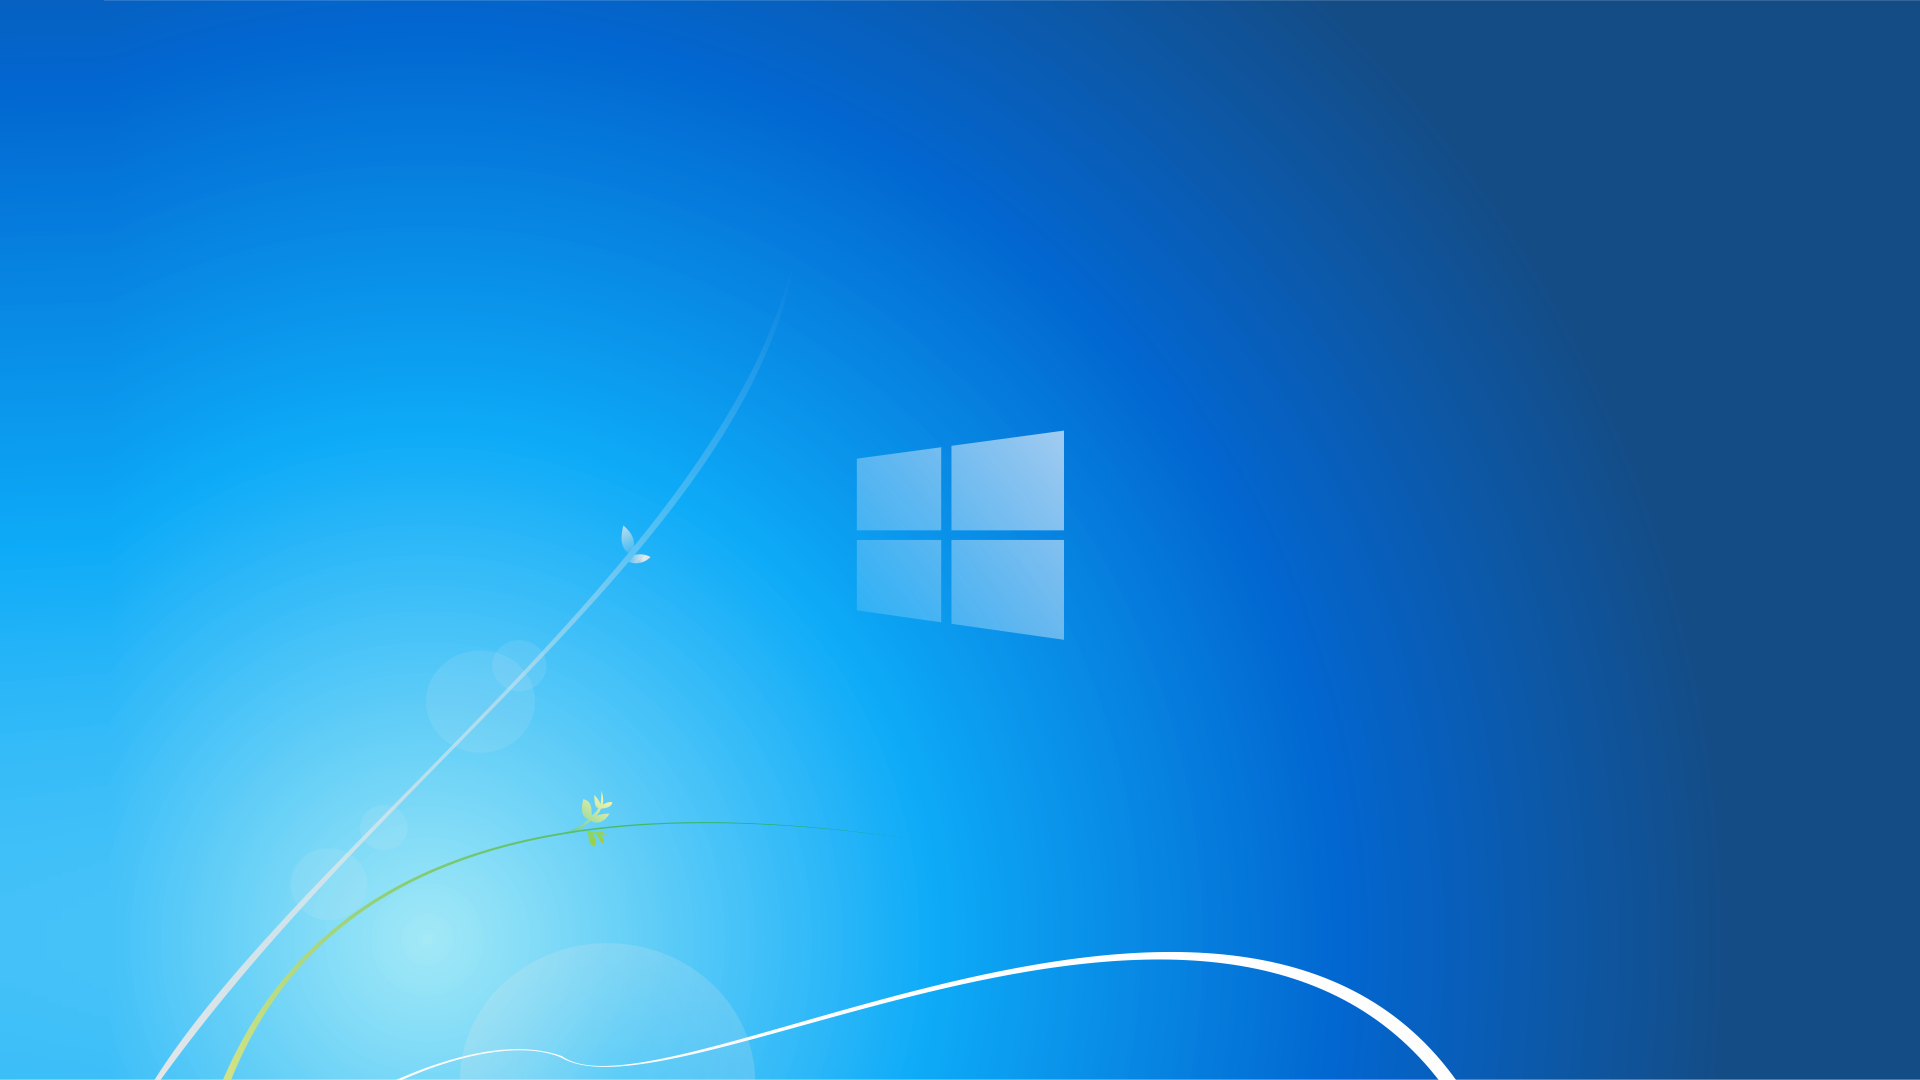 Windows 7 Reimagined Wallpaper By Gifteddeviant.deviantart